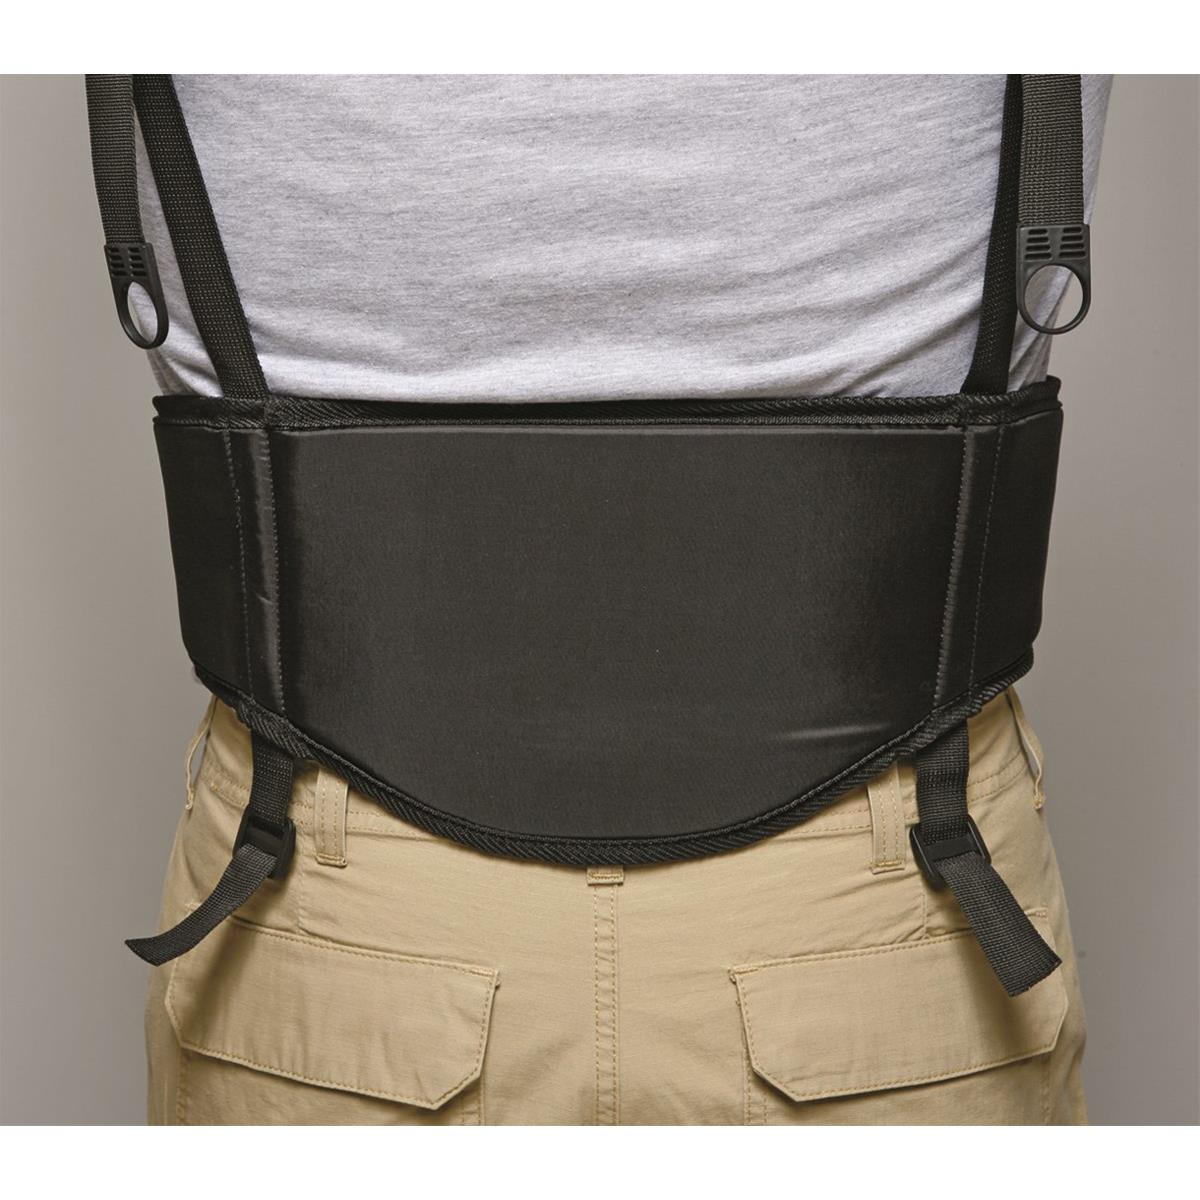 Solo Deluxe Shoulder-Saver Sprayer Harness